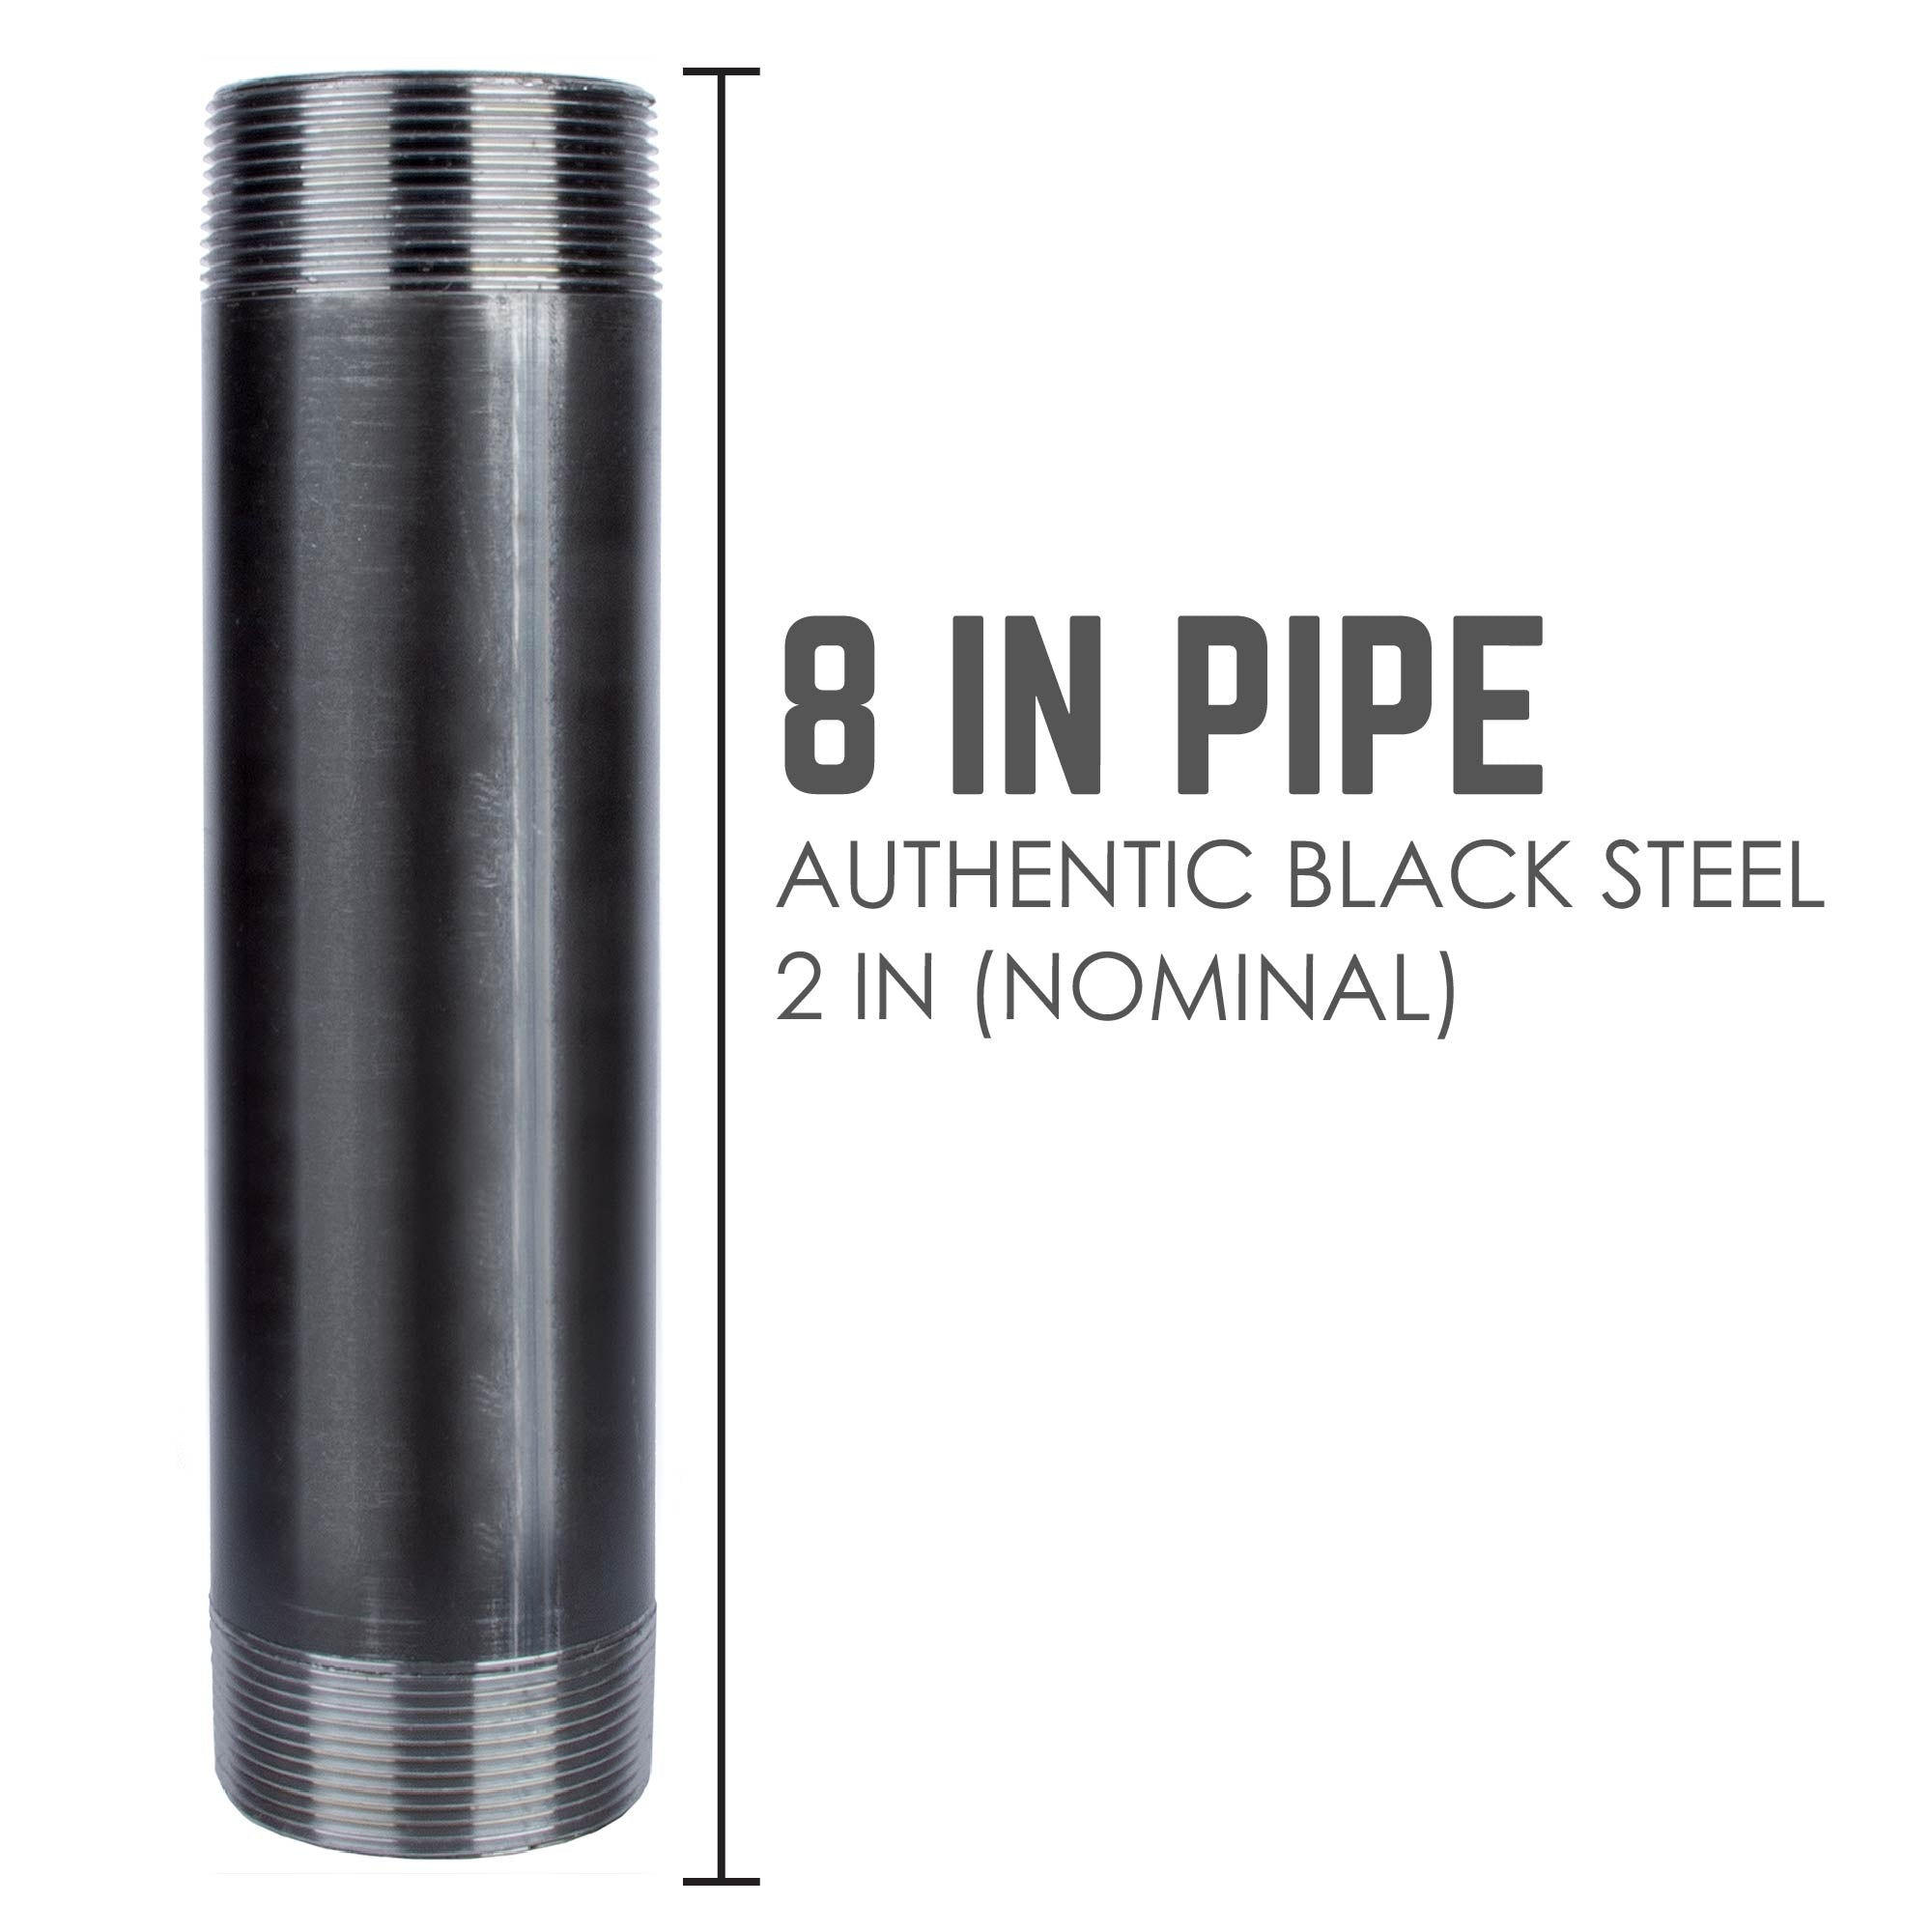 2 In X 8 In Black Pipe - Pipe Decor